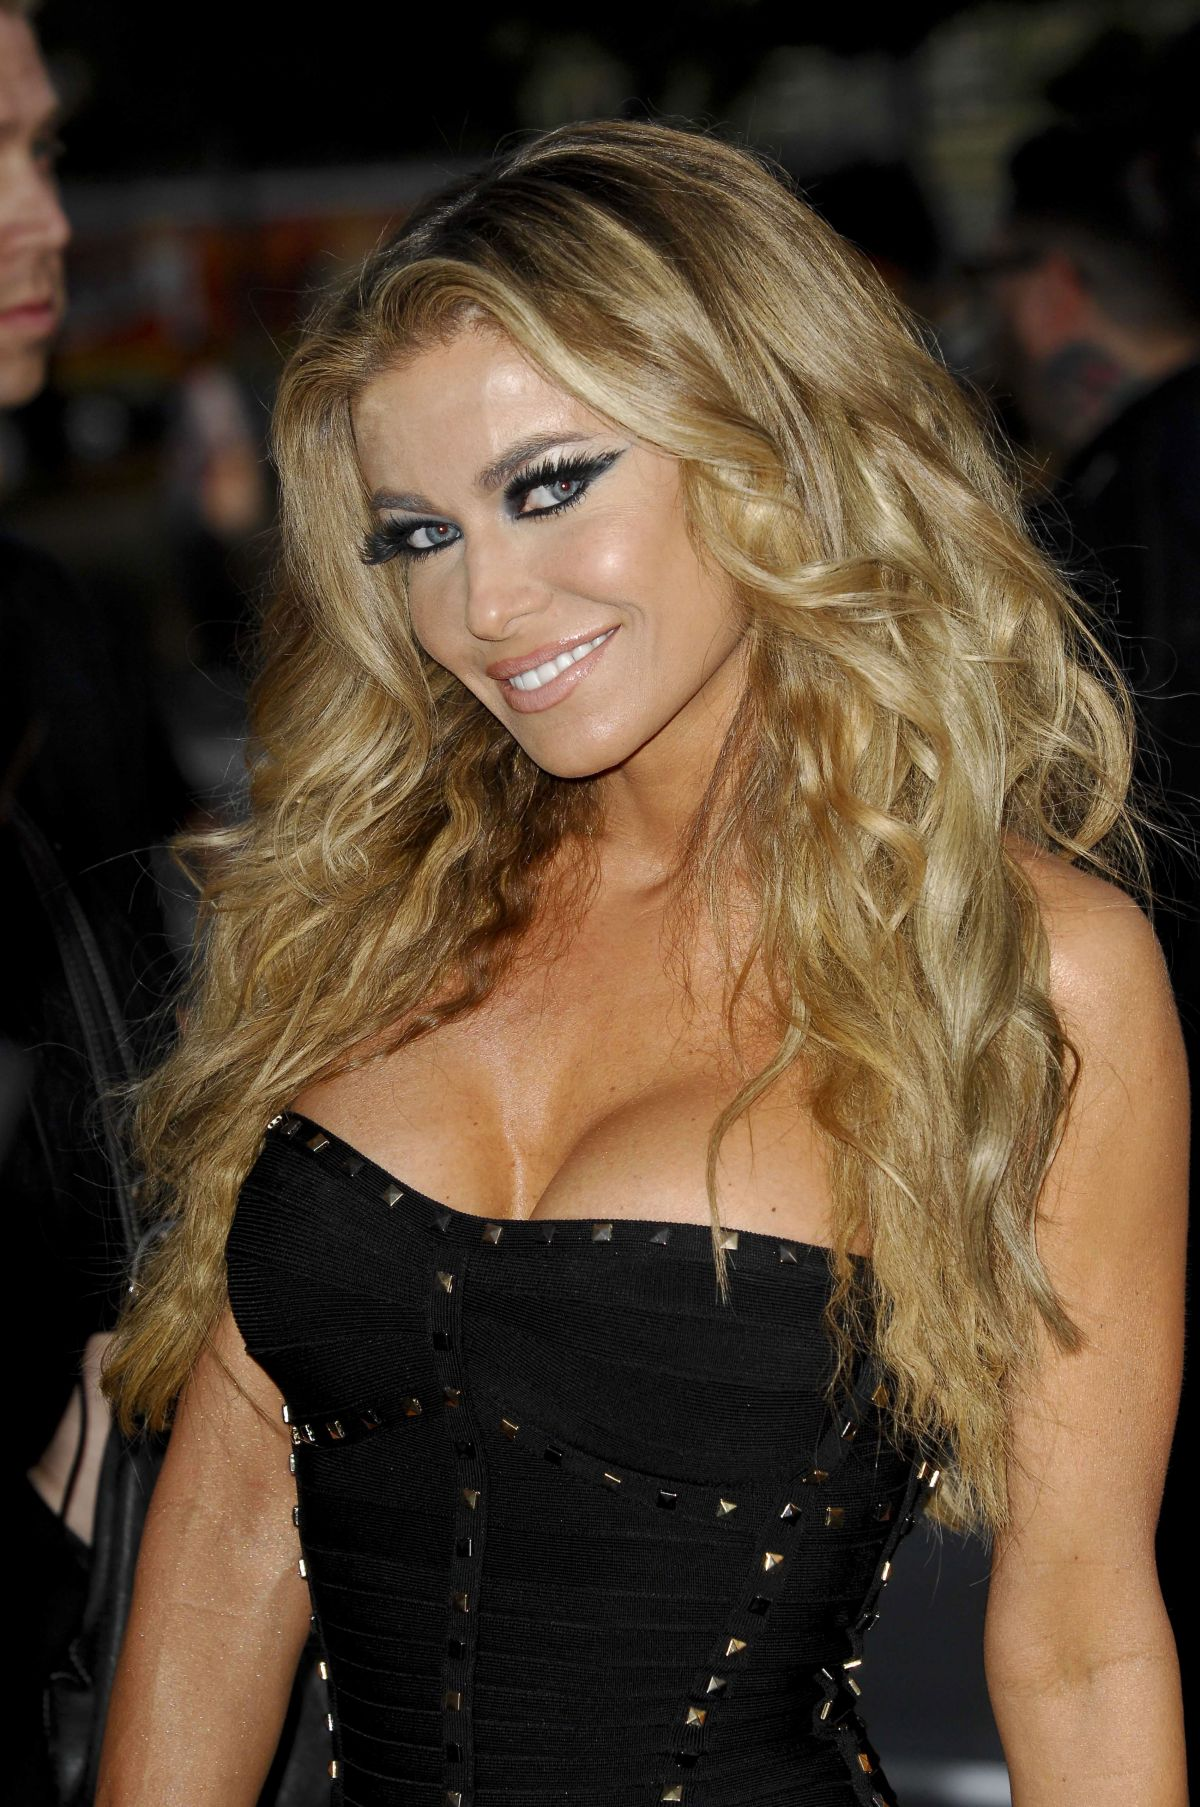 CARMEN ELECTRA at 2014 Revolver Golden Gods Awards in Los Angeles ...